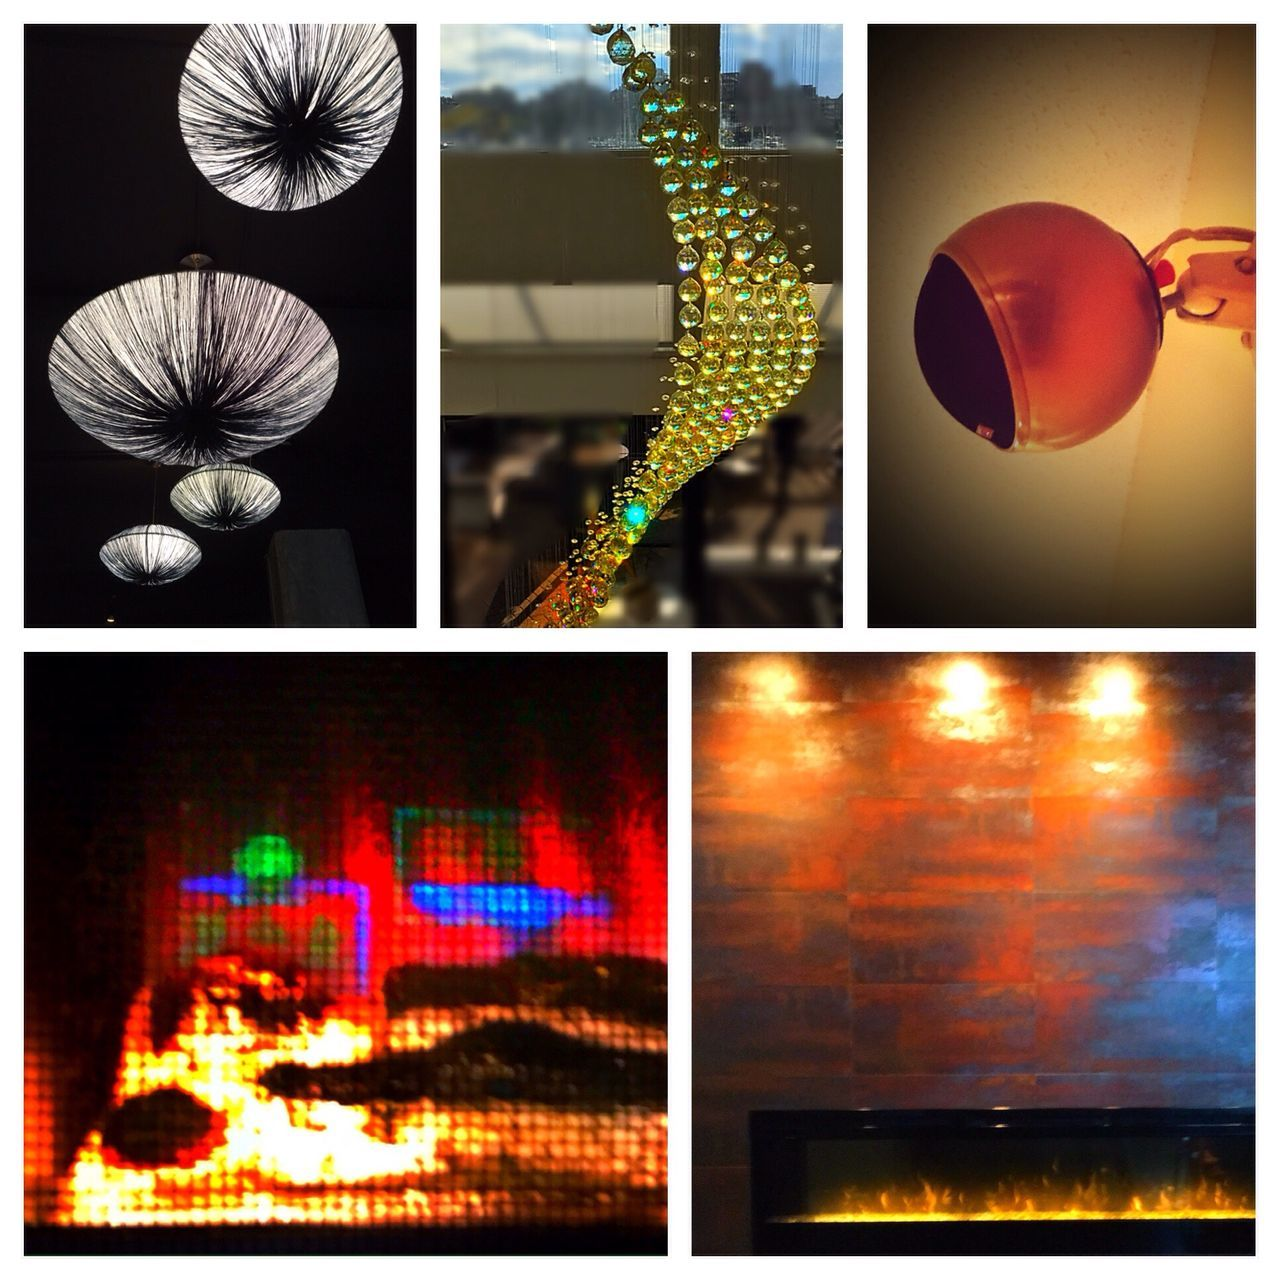 Collage of restaurant lights. Artsy Photography Creative Shots Vancouver BC Creative Editing Showcase July Abstractions In Colors Photo Art Industrial Design Industrial Lighting Chandelier Fine Art Photography Yaletownvancouver Collage Art Restaurant Decor Restaurant Lights